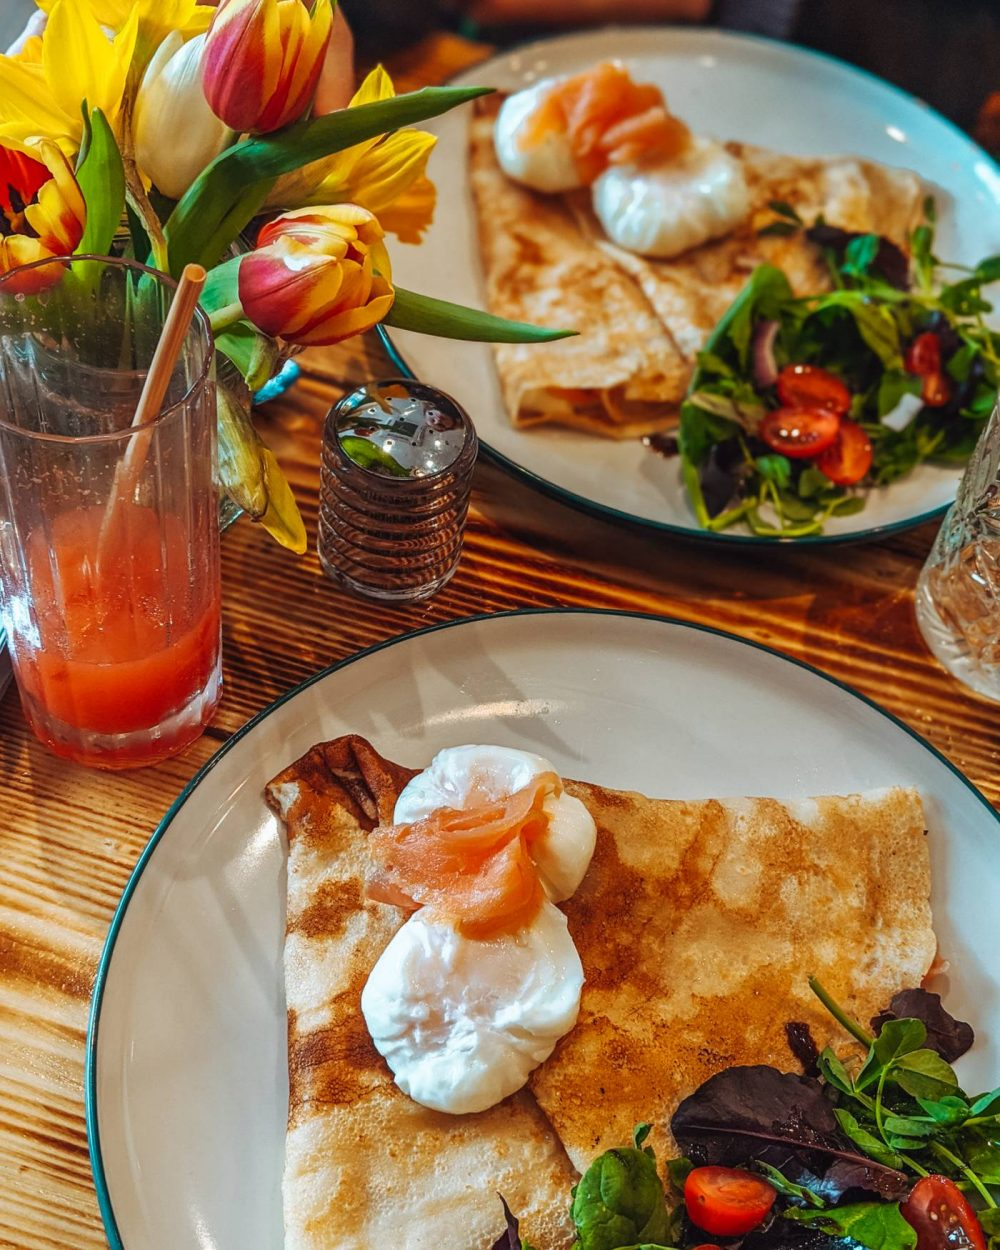 Egg and smoked salmon Crepe at Whisk Kitchen, Woburn Sands